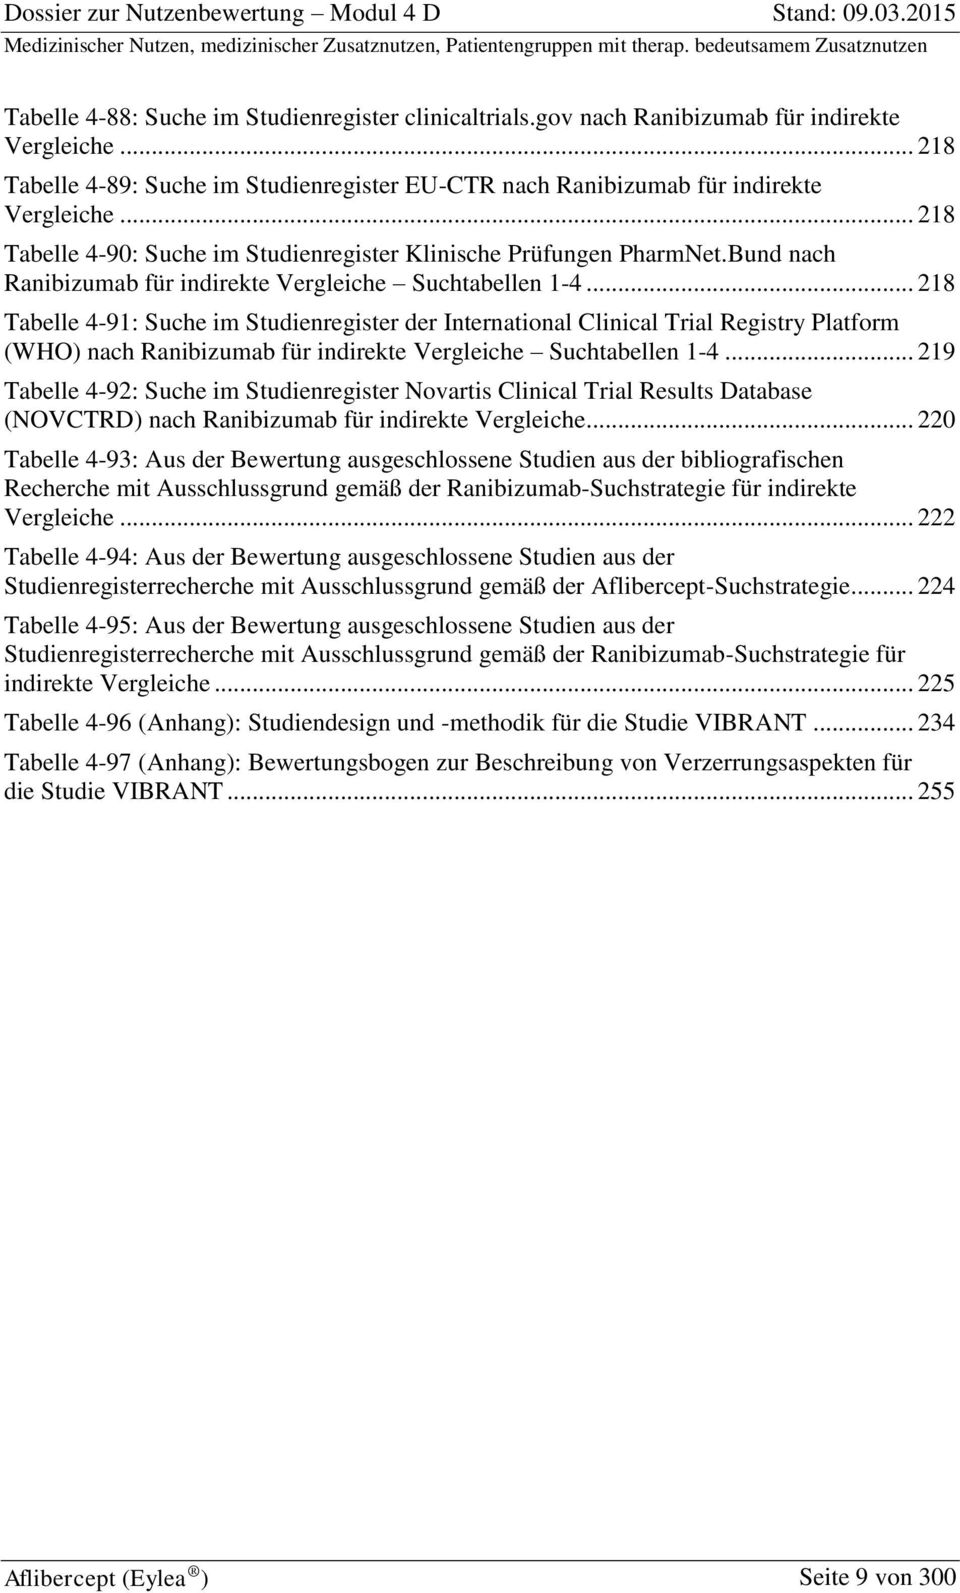 .. 218 Tabelle 4-91: Suche im Studienregister der International Clinical Trial Registry Platform (WHO) nach Ranibizumab für indirekte Vergleiche Suchtabellen 1-4.